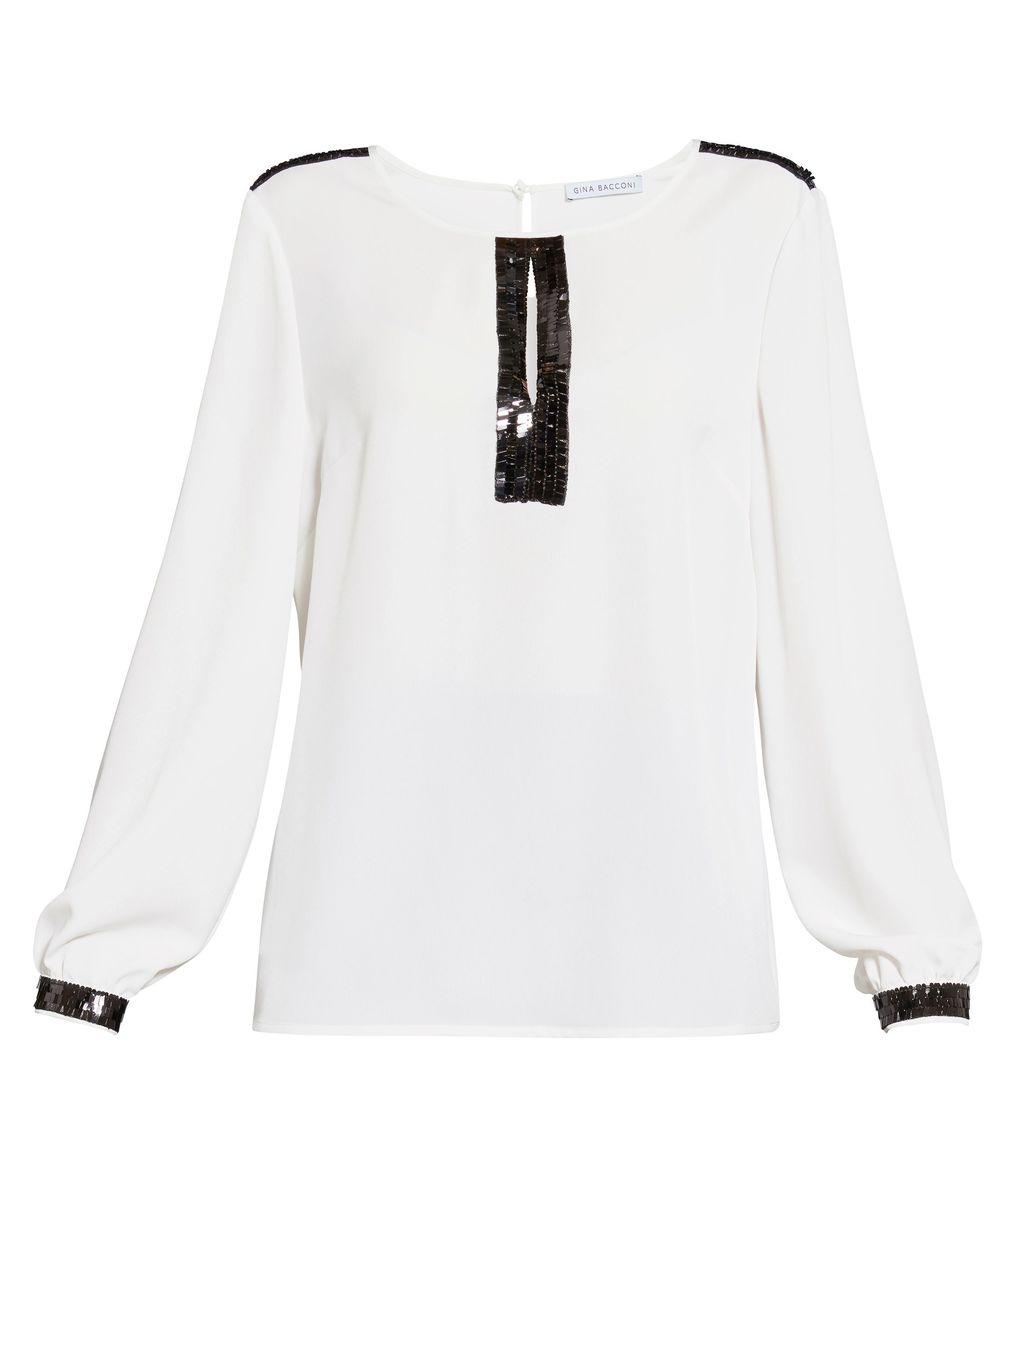 Soho Crepe Blouse With Sequin Trim, Cream - pattern: plain; style: blouse; predominant colour: ivory/cream; secondary colour: black; occasions: evening; length: standard; fibres: polyester/polyamide - 100%; fit: straight cut; neckline: crew; sleeve length: long sleeve; sleeve style: standard; texture group: crepes; pattern type: fabric; embellishment: sequins; multicoloured: multicoloured; season: s/s 2016; wardrobe: event